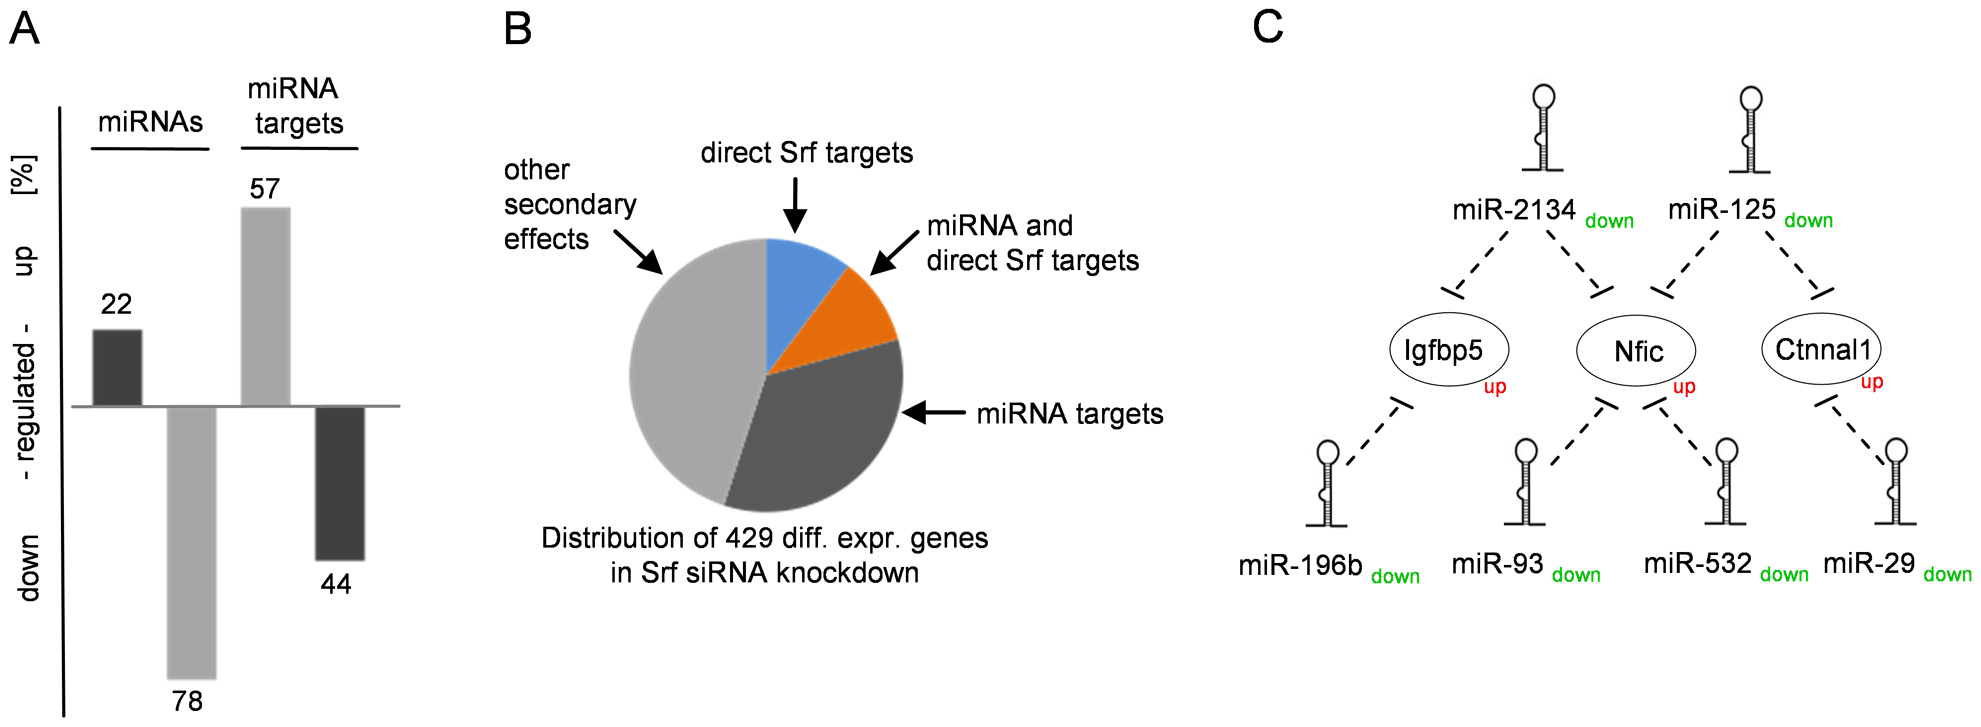 miRNAs and their impact on the Srf-driven transcription network.